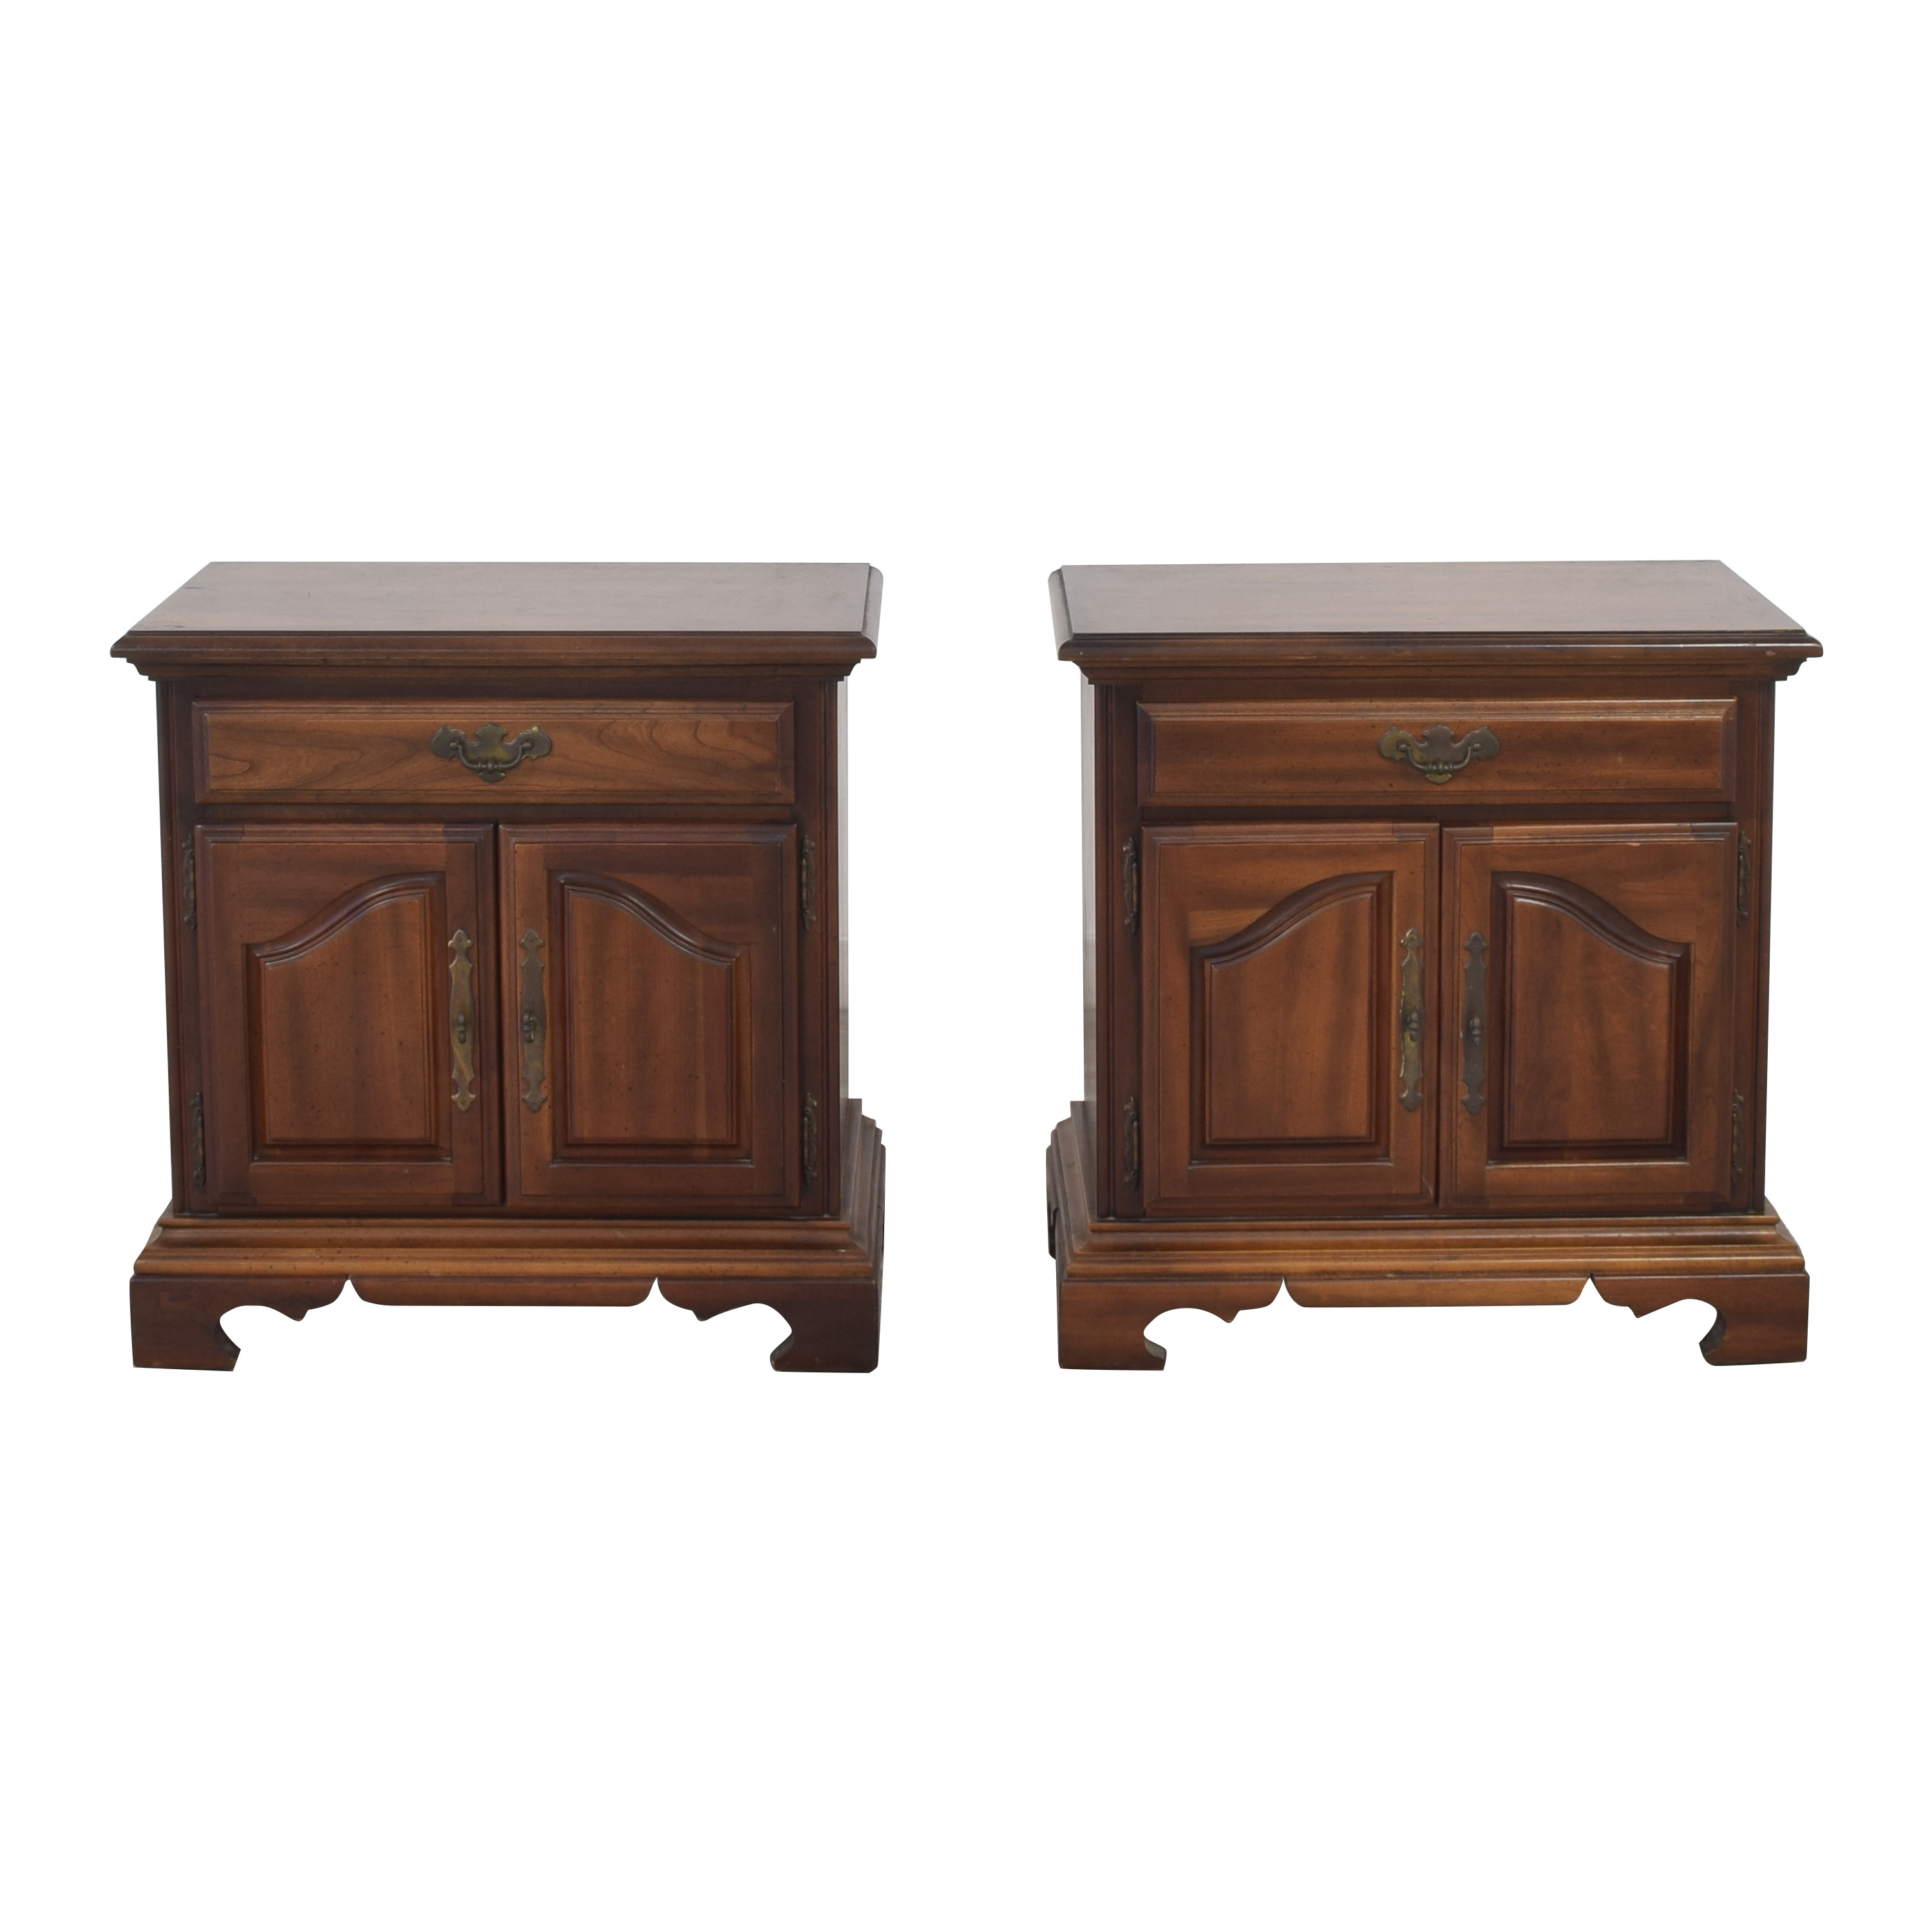 Kenmore Cabinet Nightstands / Tables